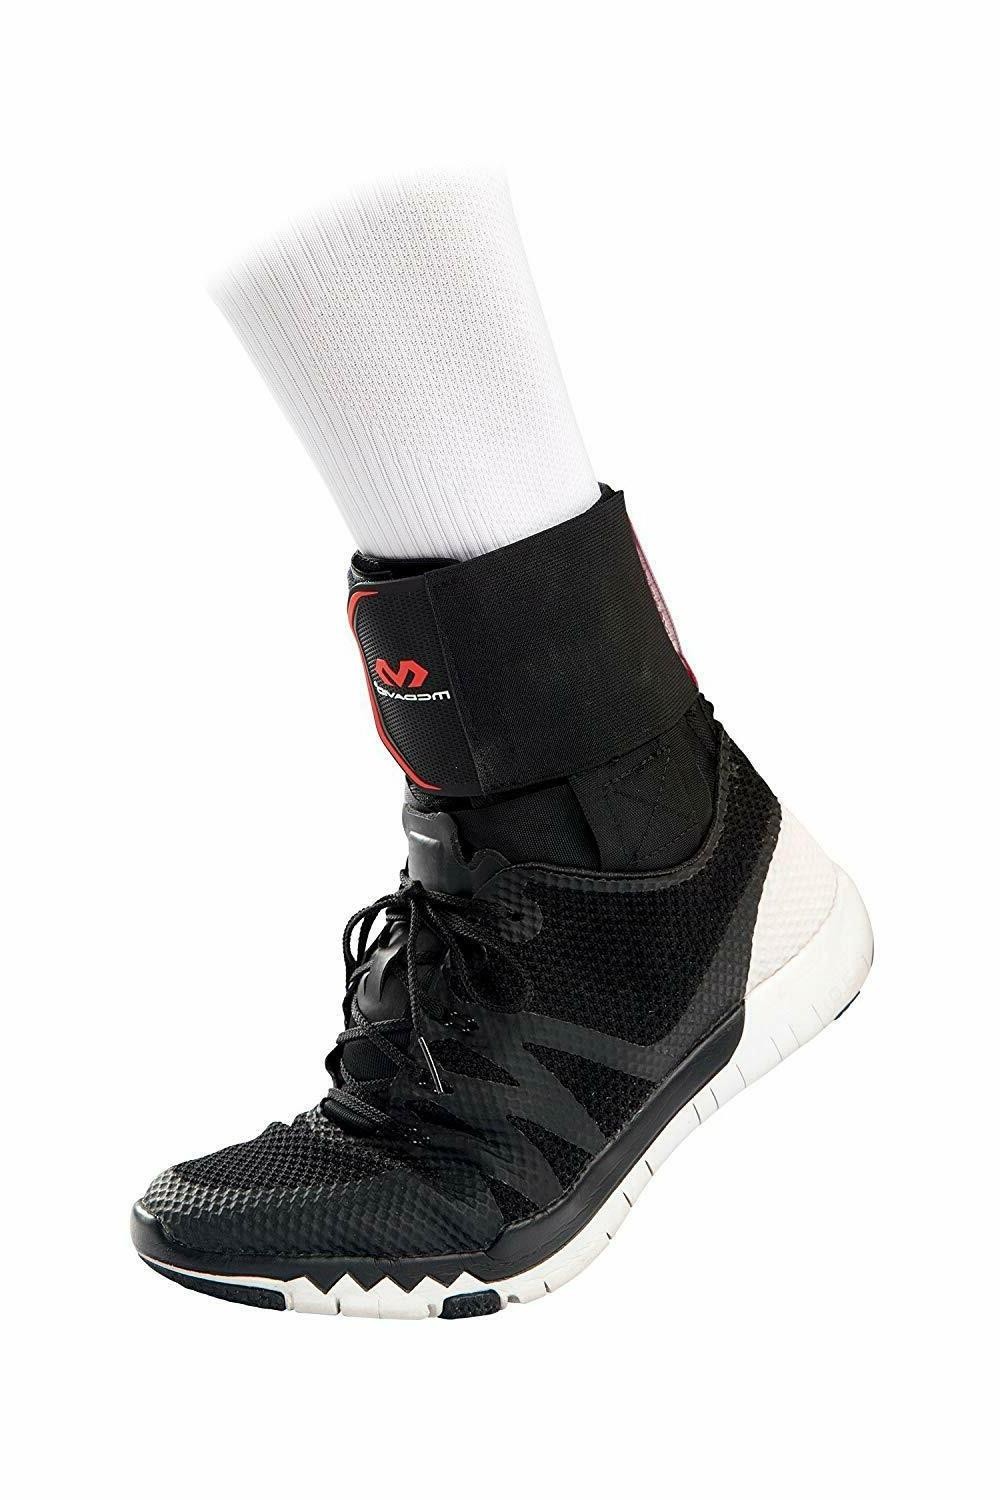 Mcdavid Support, Ankle Support for Ankle Sprains,